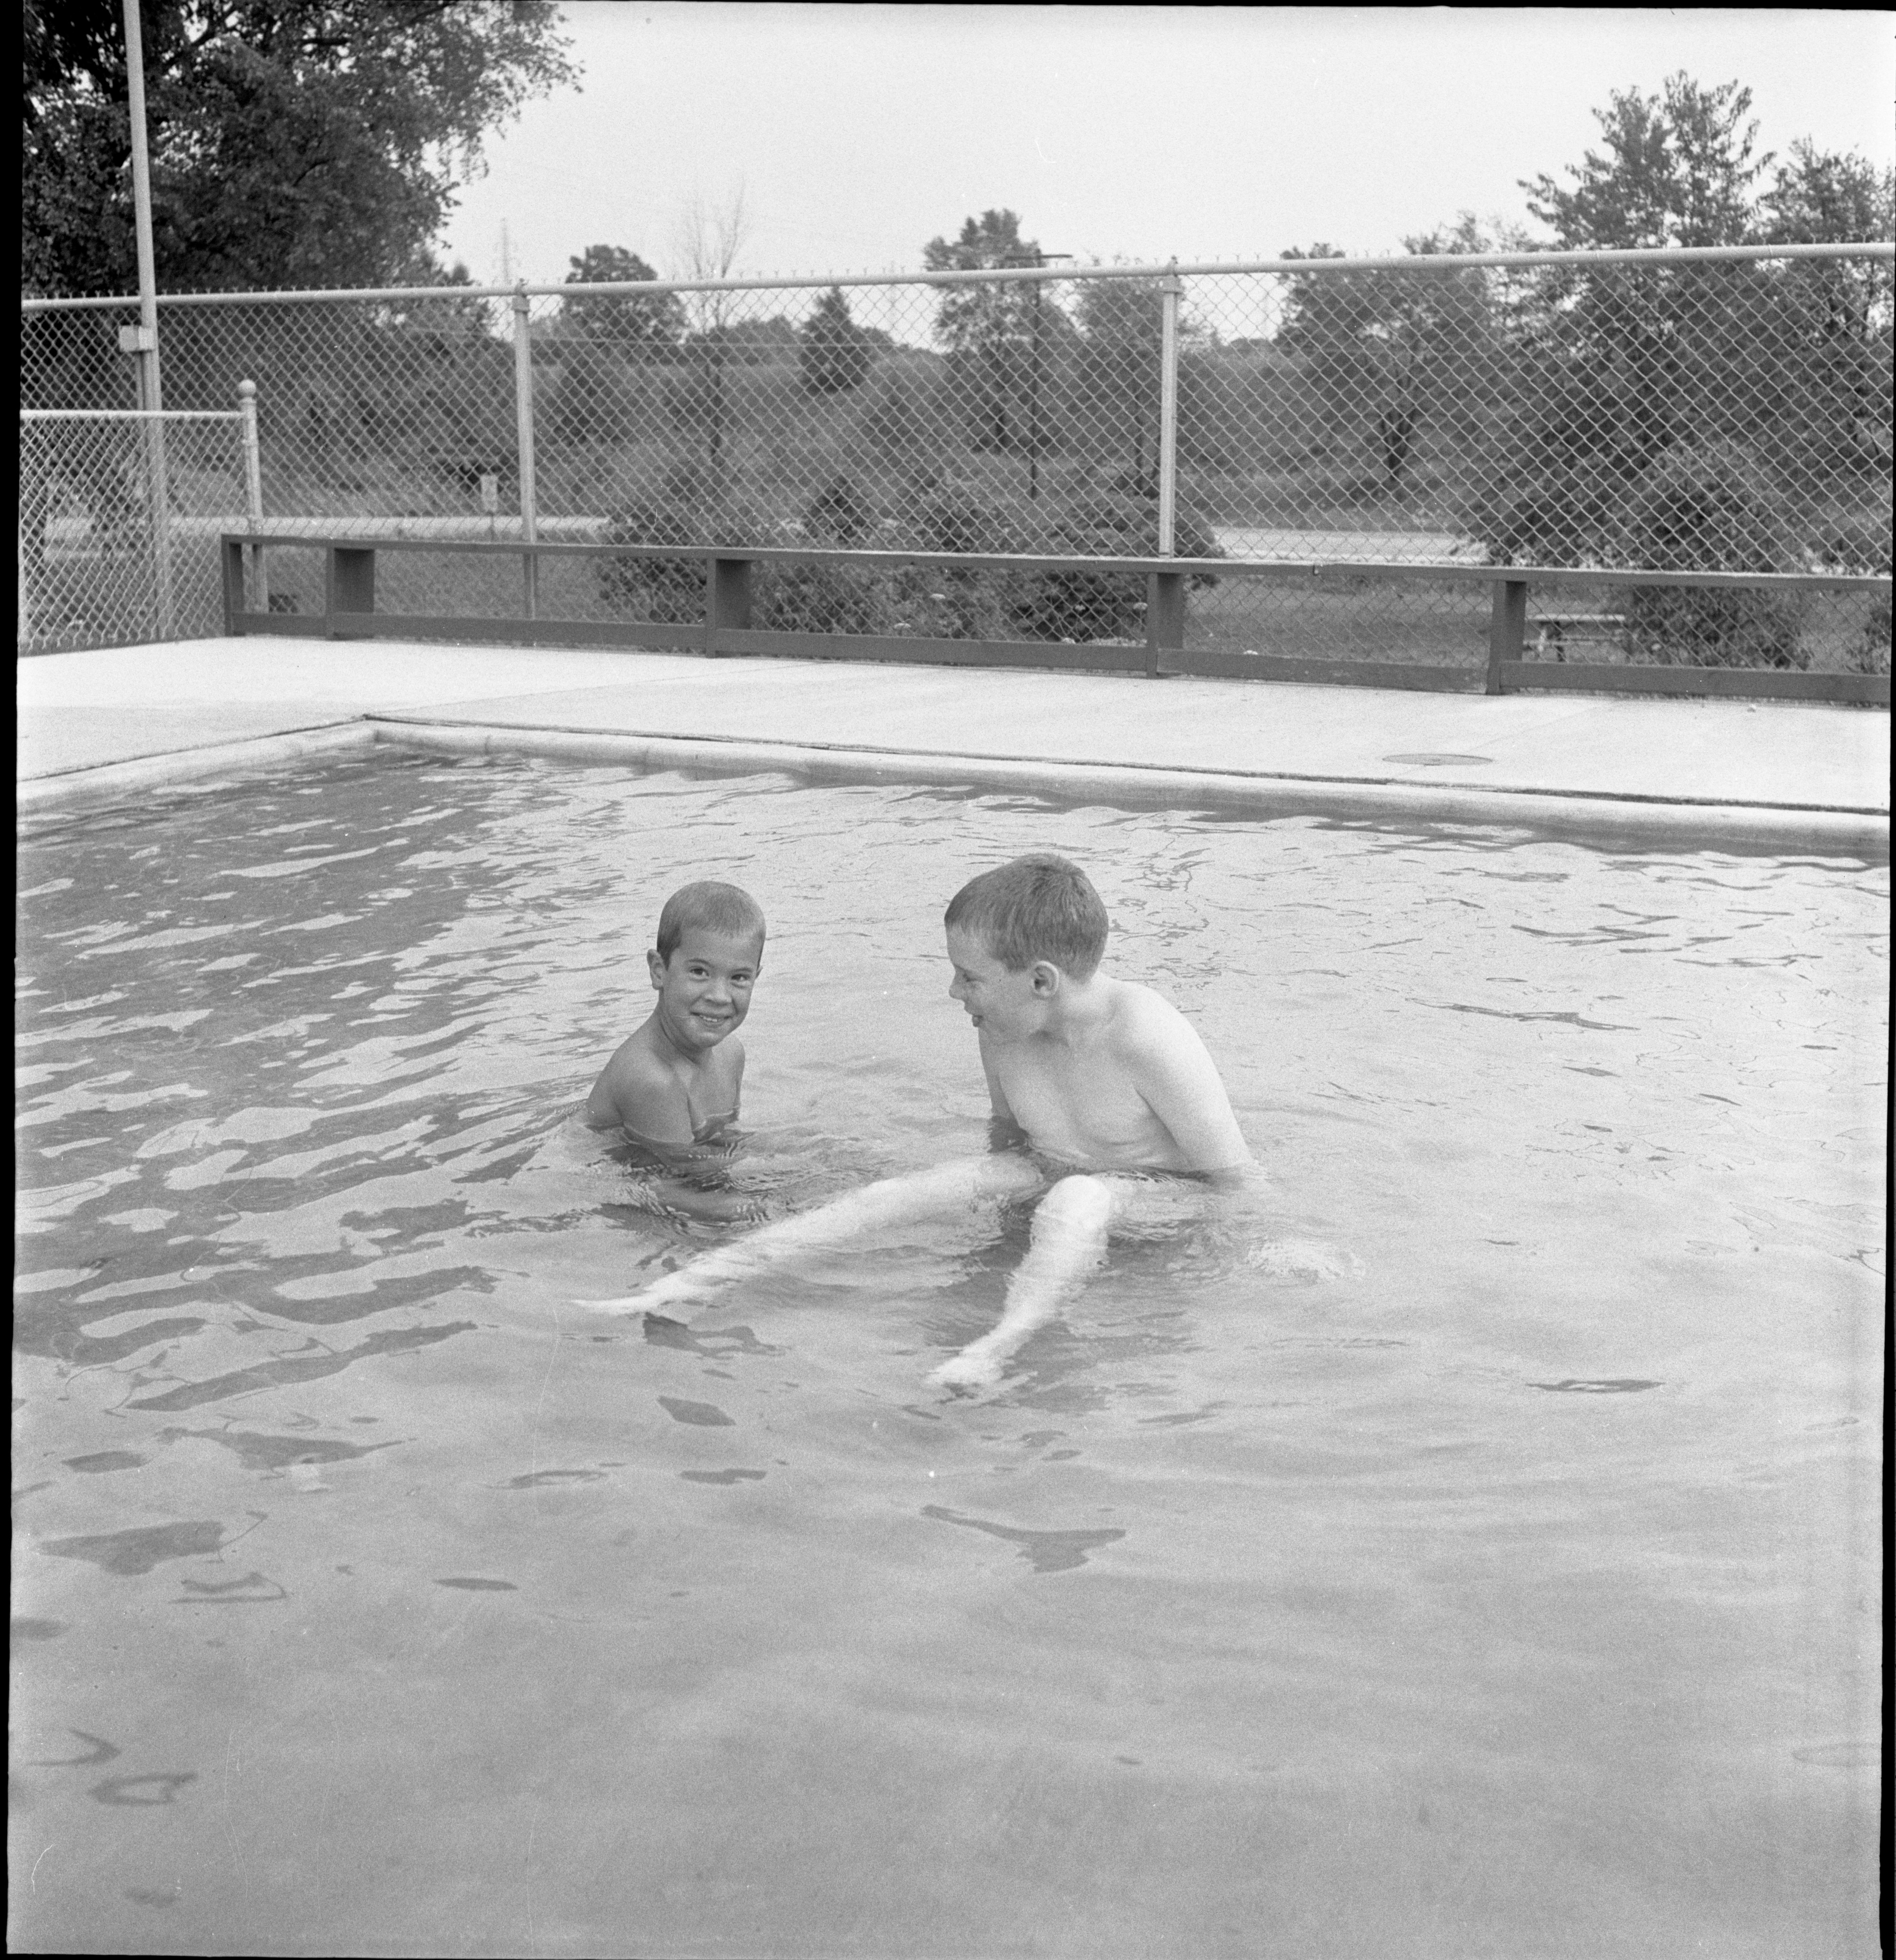 Robbie Bolt & Bob Berry Enjoy The Wading Pool At The Chippewa Hills Swimming Club, July 1962 image